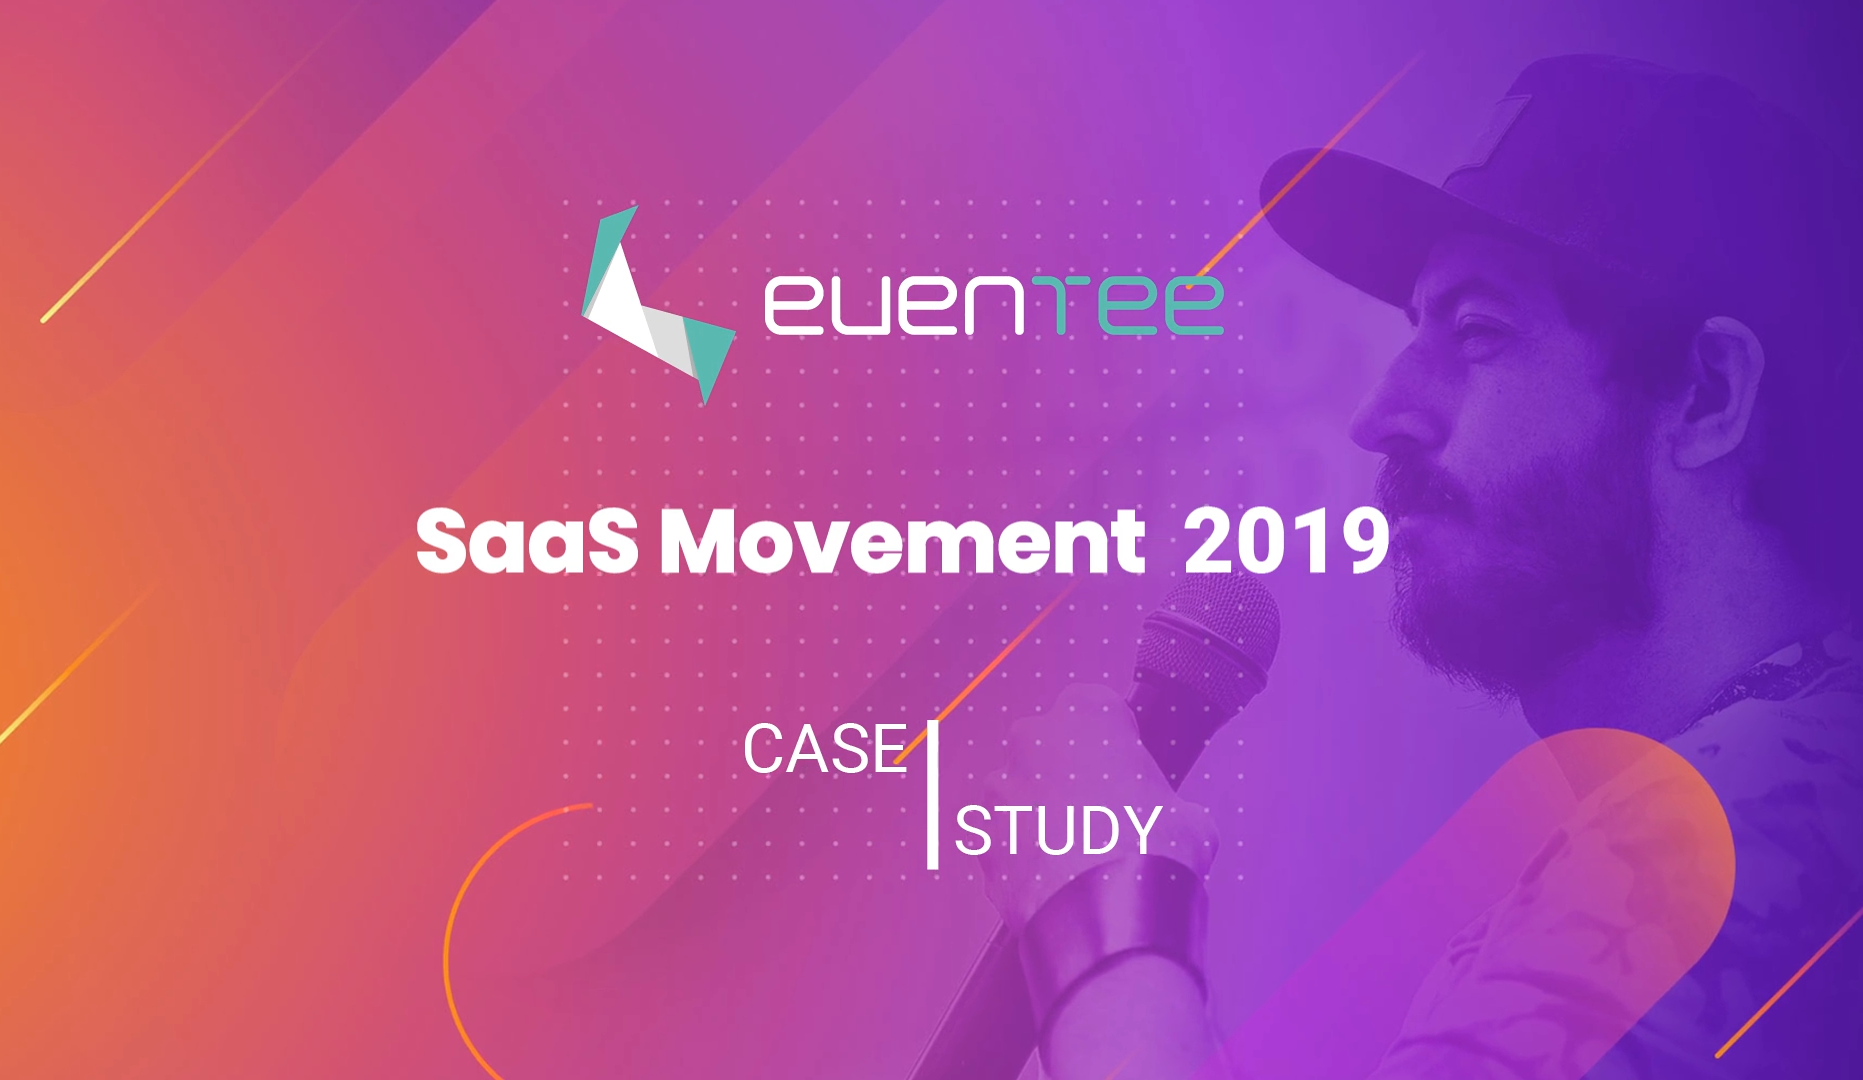 CASE STUDY: How SaaS Movement 2019 engaged attendees with Eventee